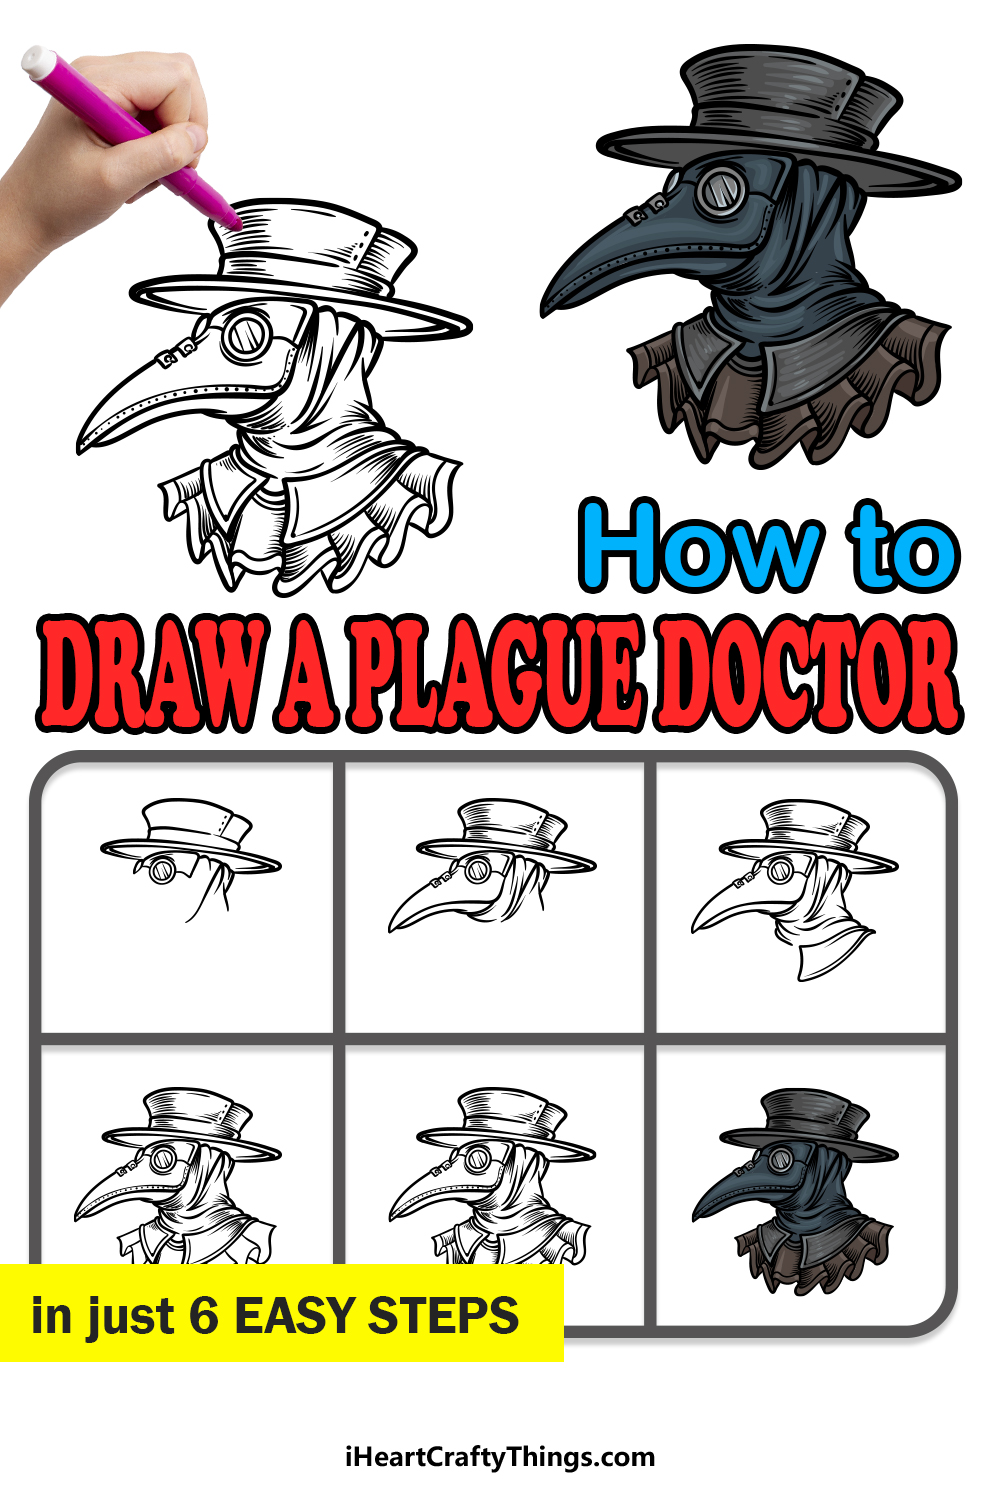 how to draw a plague doctor in 6 easy steps